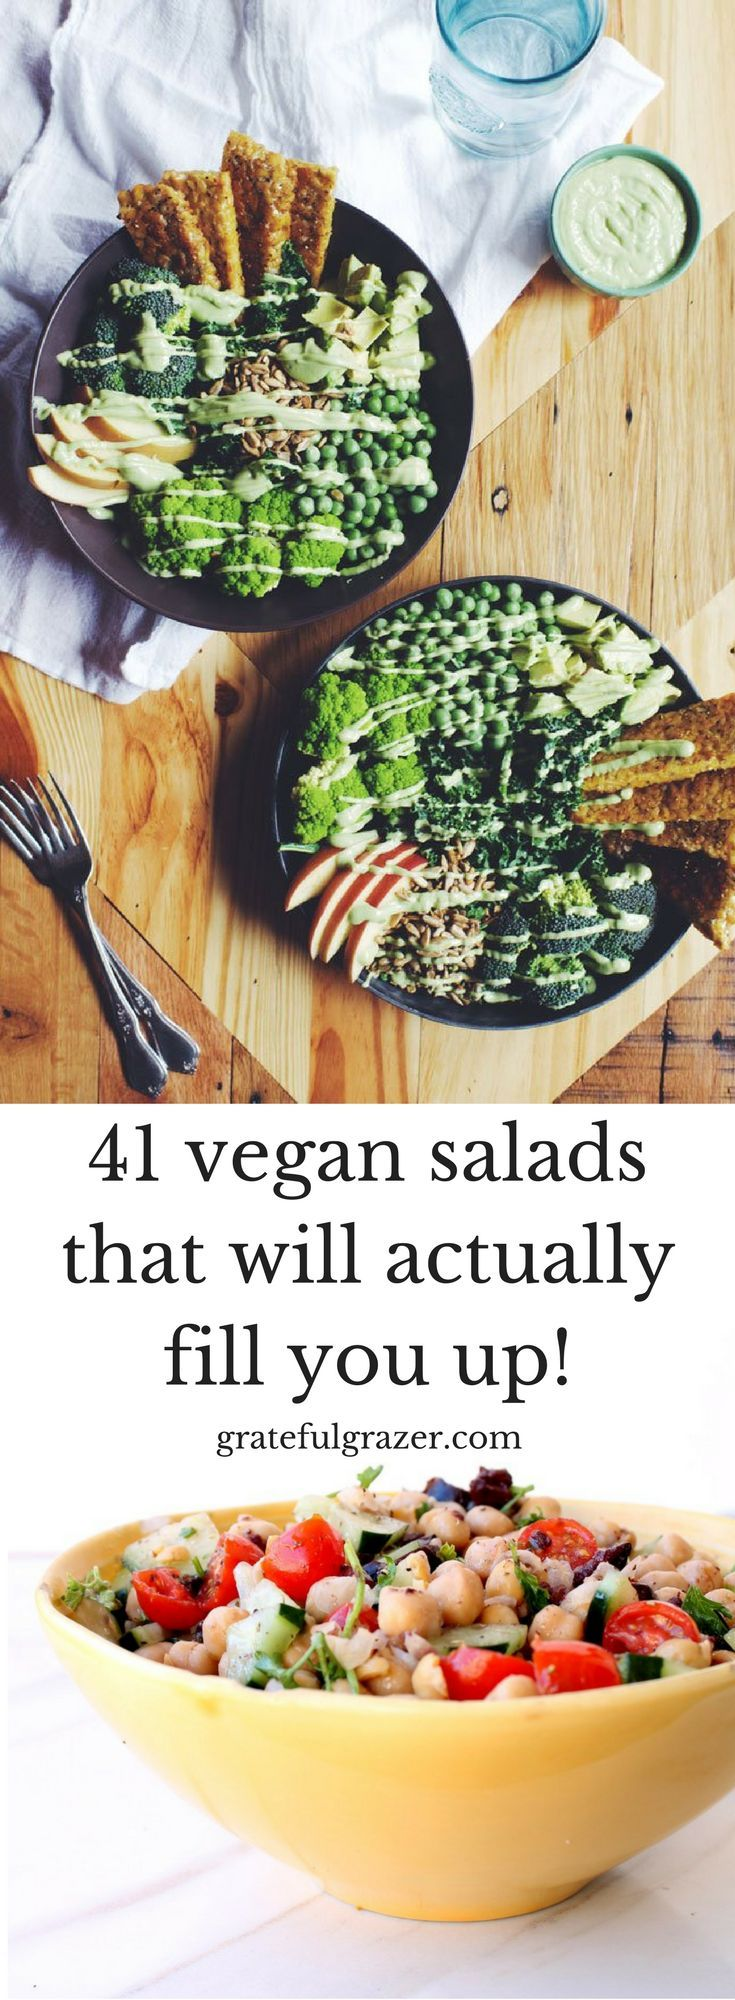 8 Vegetarian Meals That Actually Fill You Up